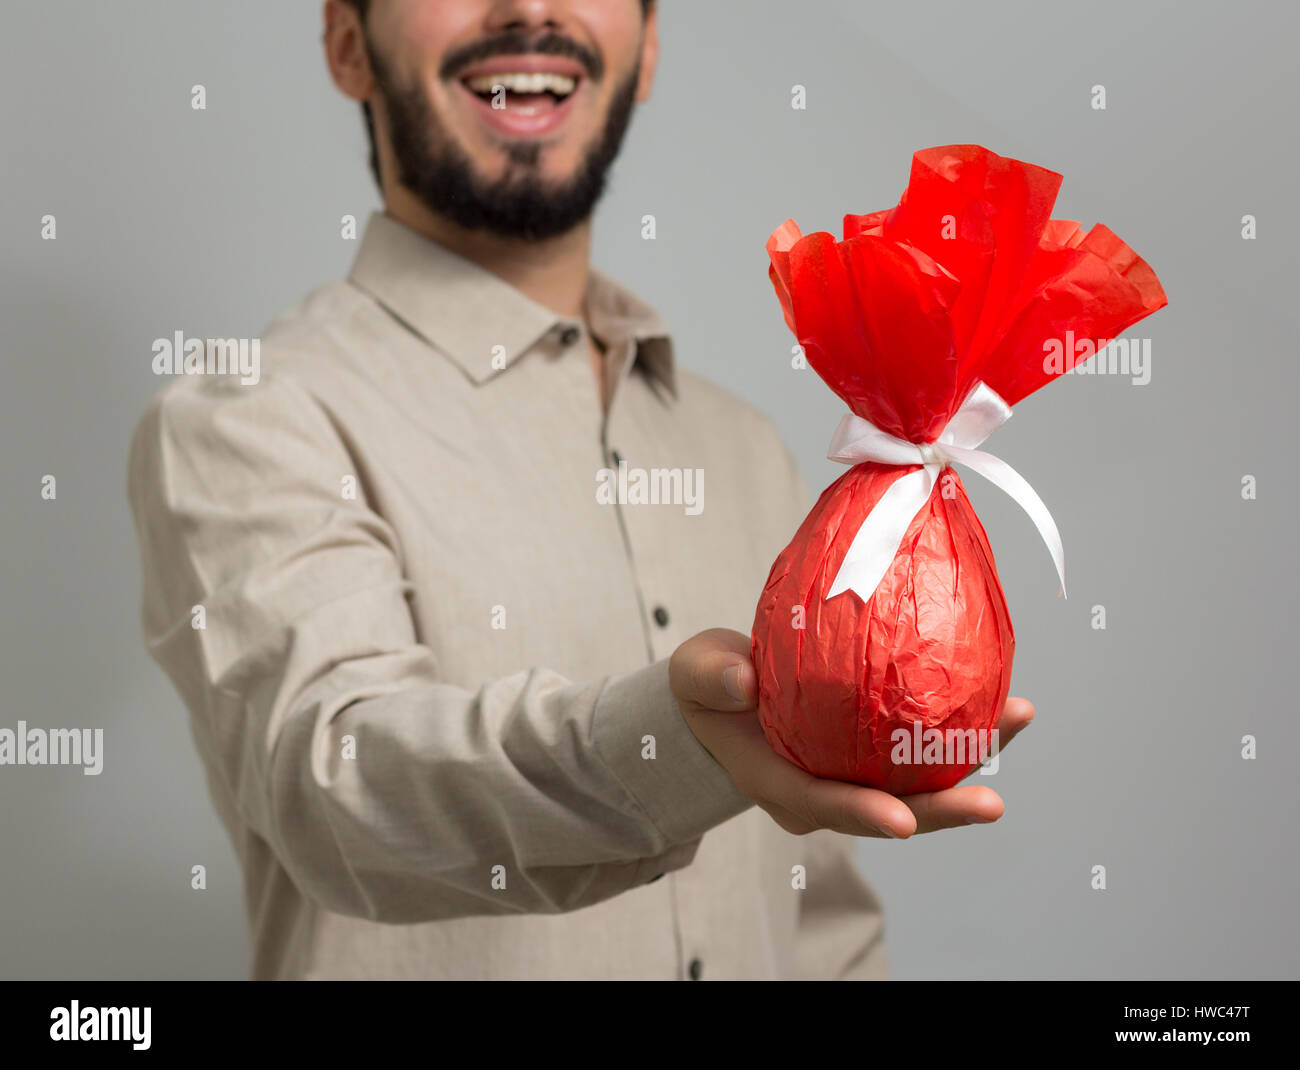 Young man presents homemade Easter egg, packed in red paper. Slim man wearing social shirt of neutral color, gray - Stock Image